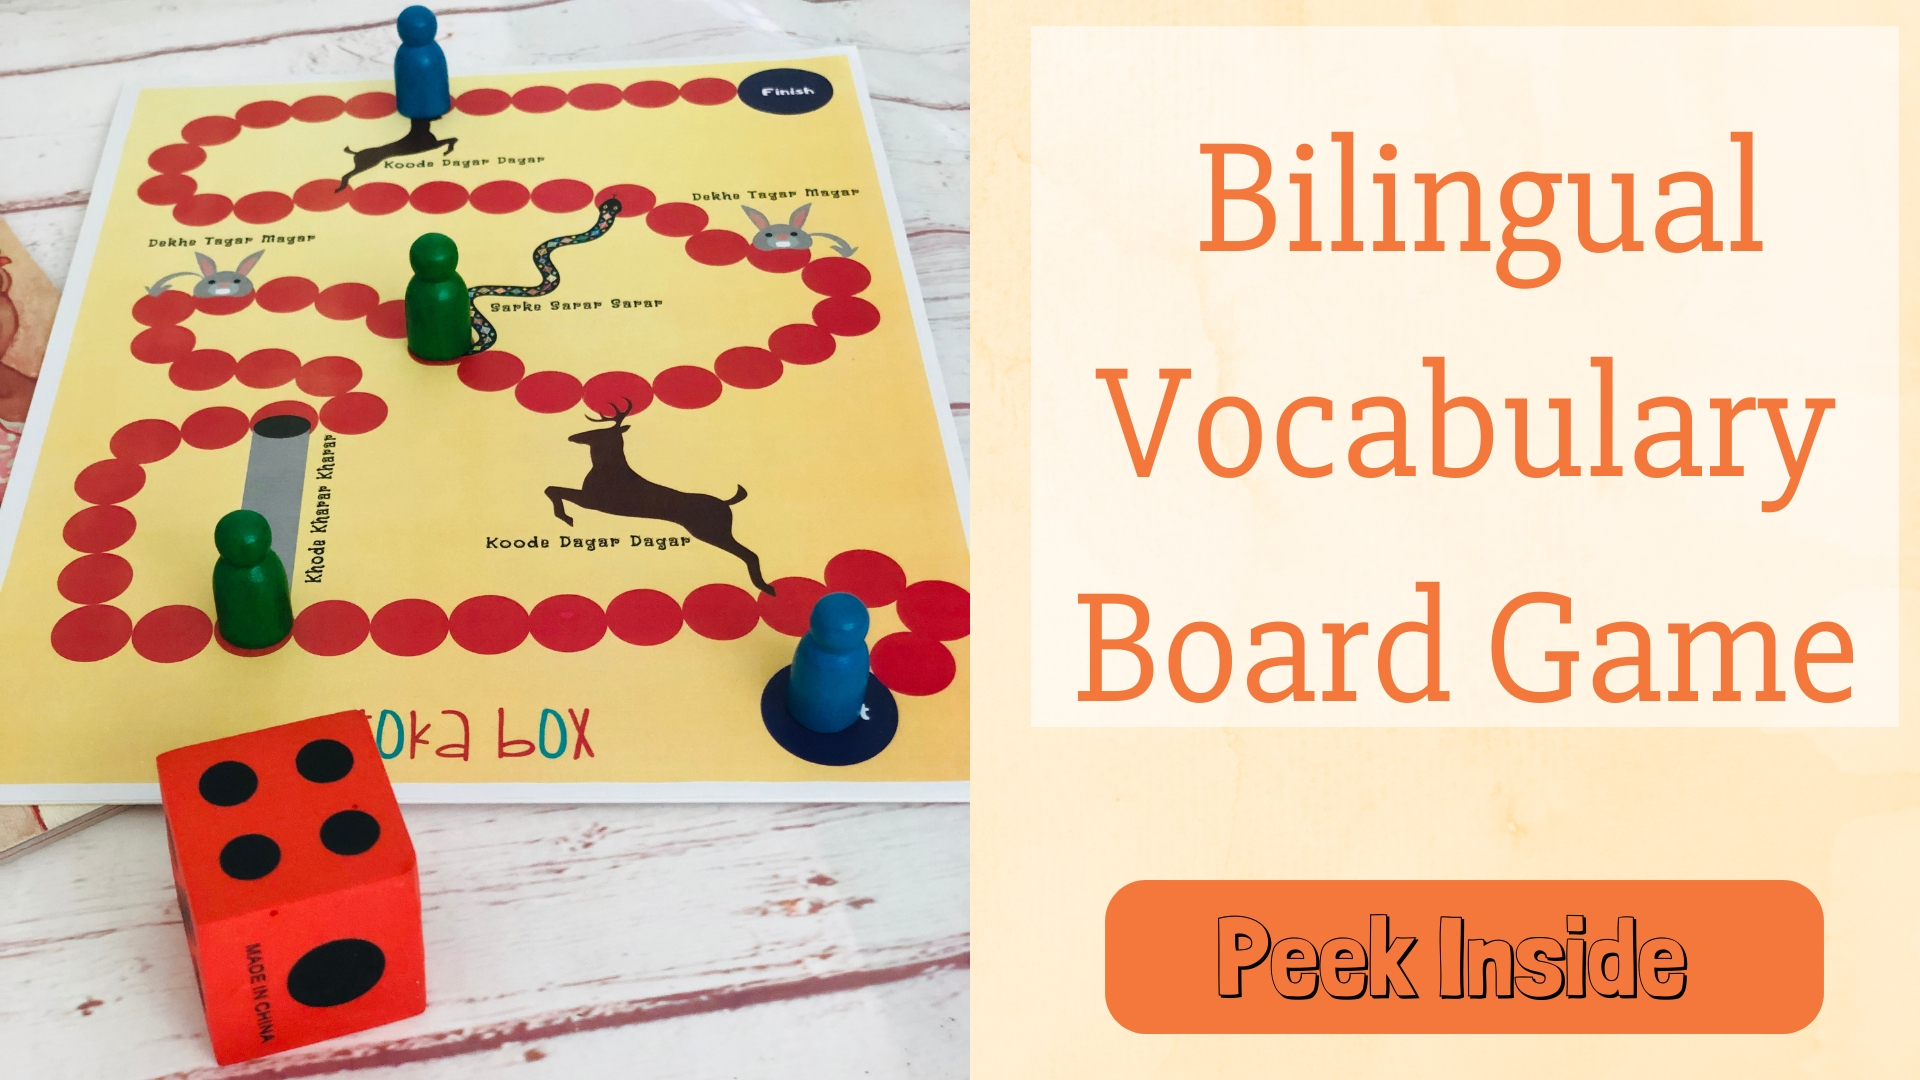 Bilingual Vocabulary Board Game